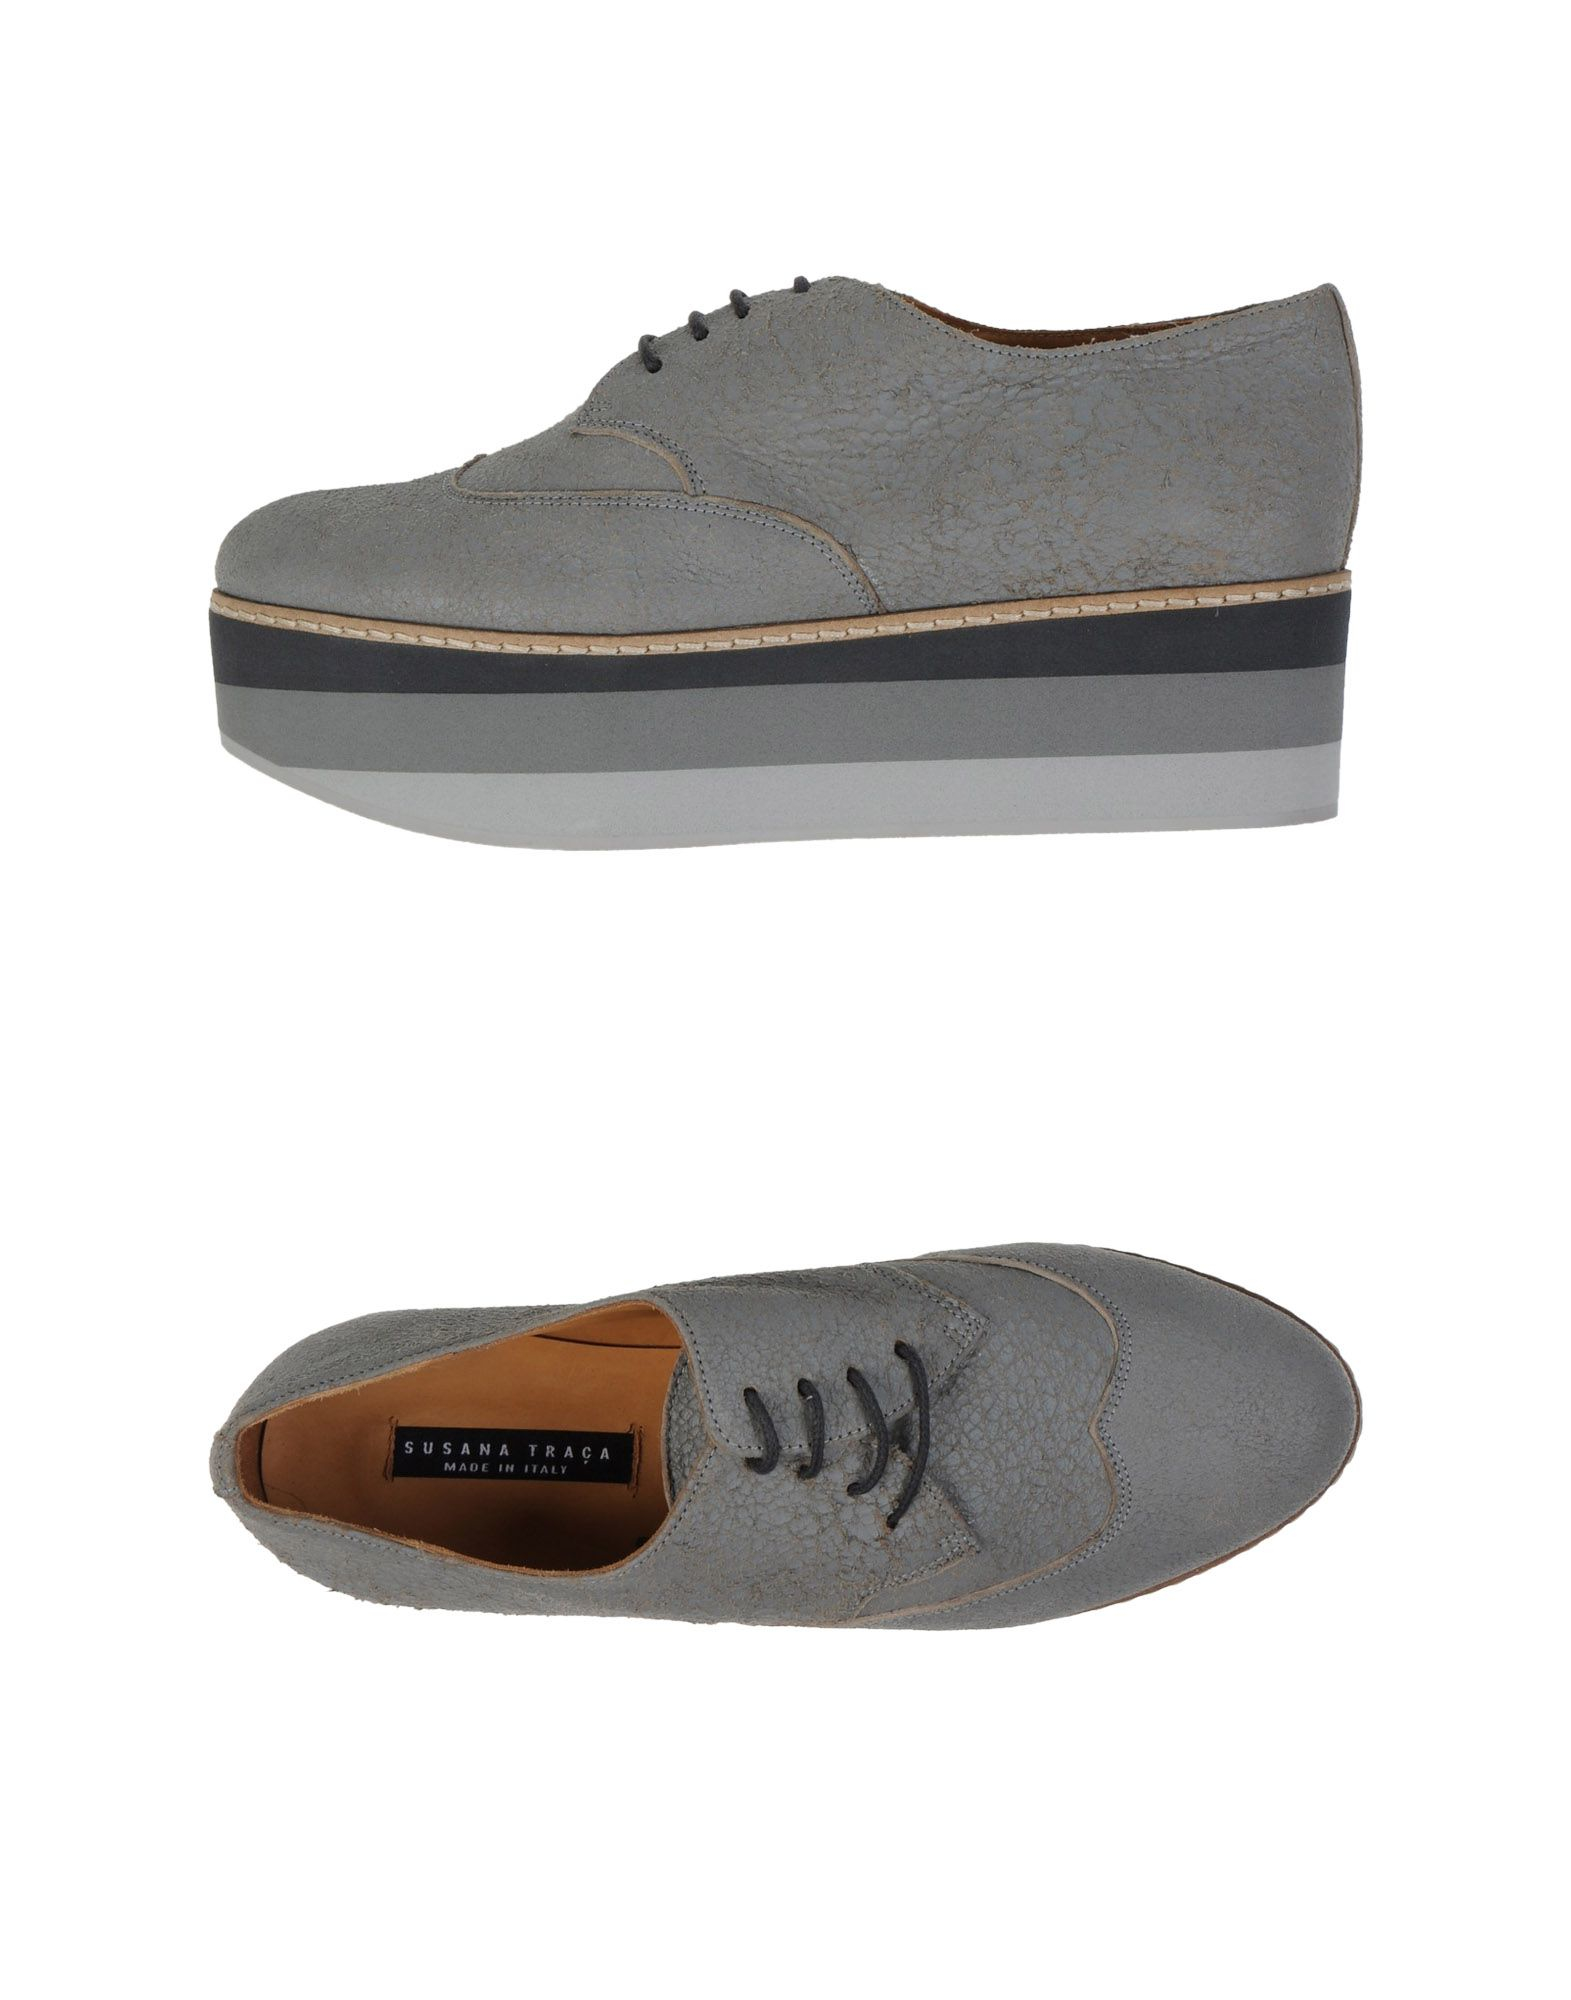 Buy Cheap How Much Buy Cheap Huge Surprise FOOTWEAR - Lace-up shoes Susana Tra?a How Much Sale Online Sale Supply XxJd3Loqkq